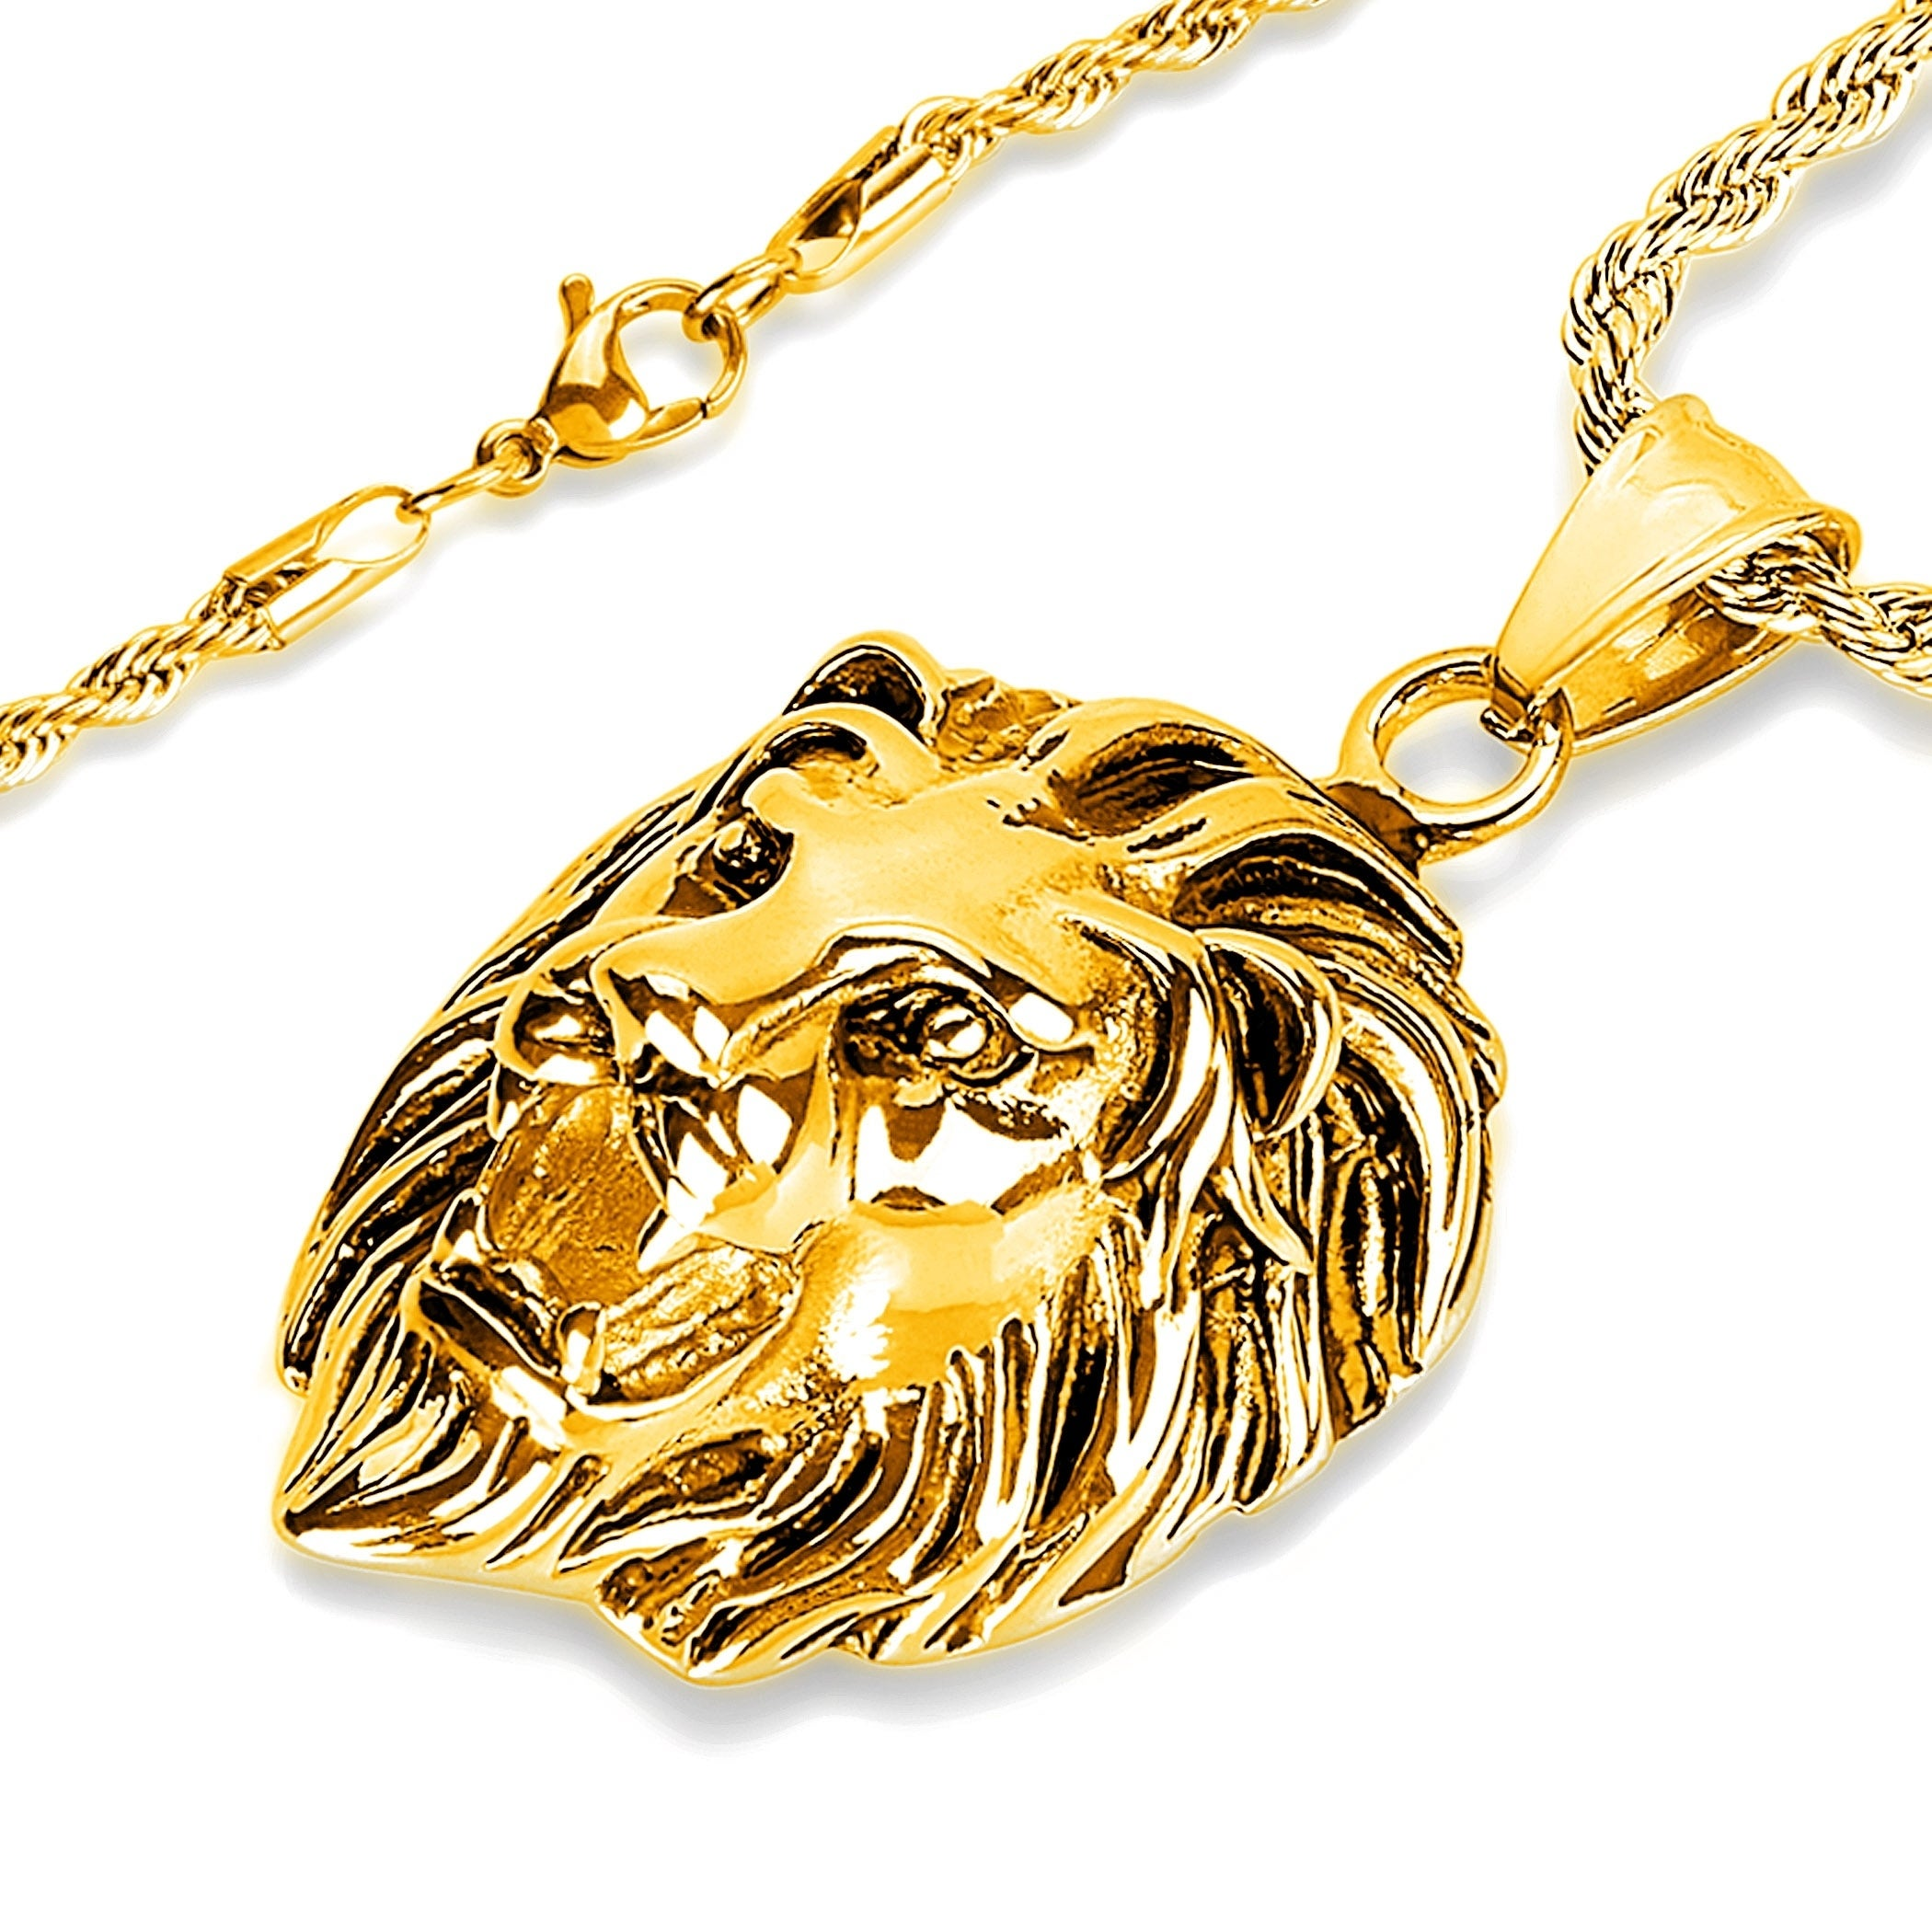 51050694f25ec Shop Crucible Polished Stainless Steel Lion Head Pendant Necklace - 24